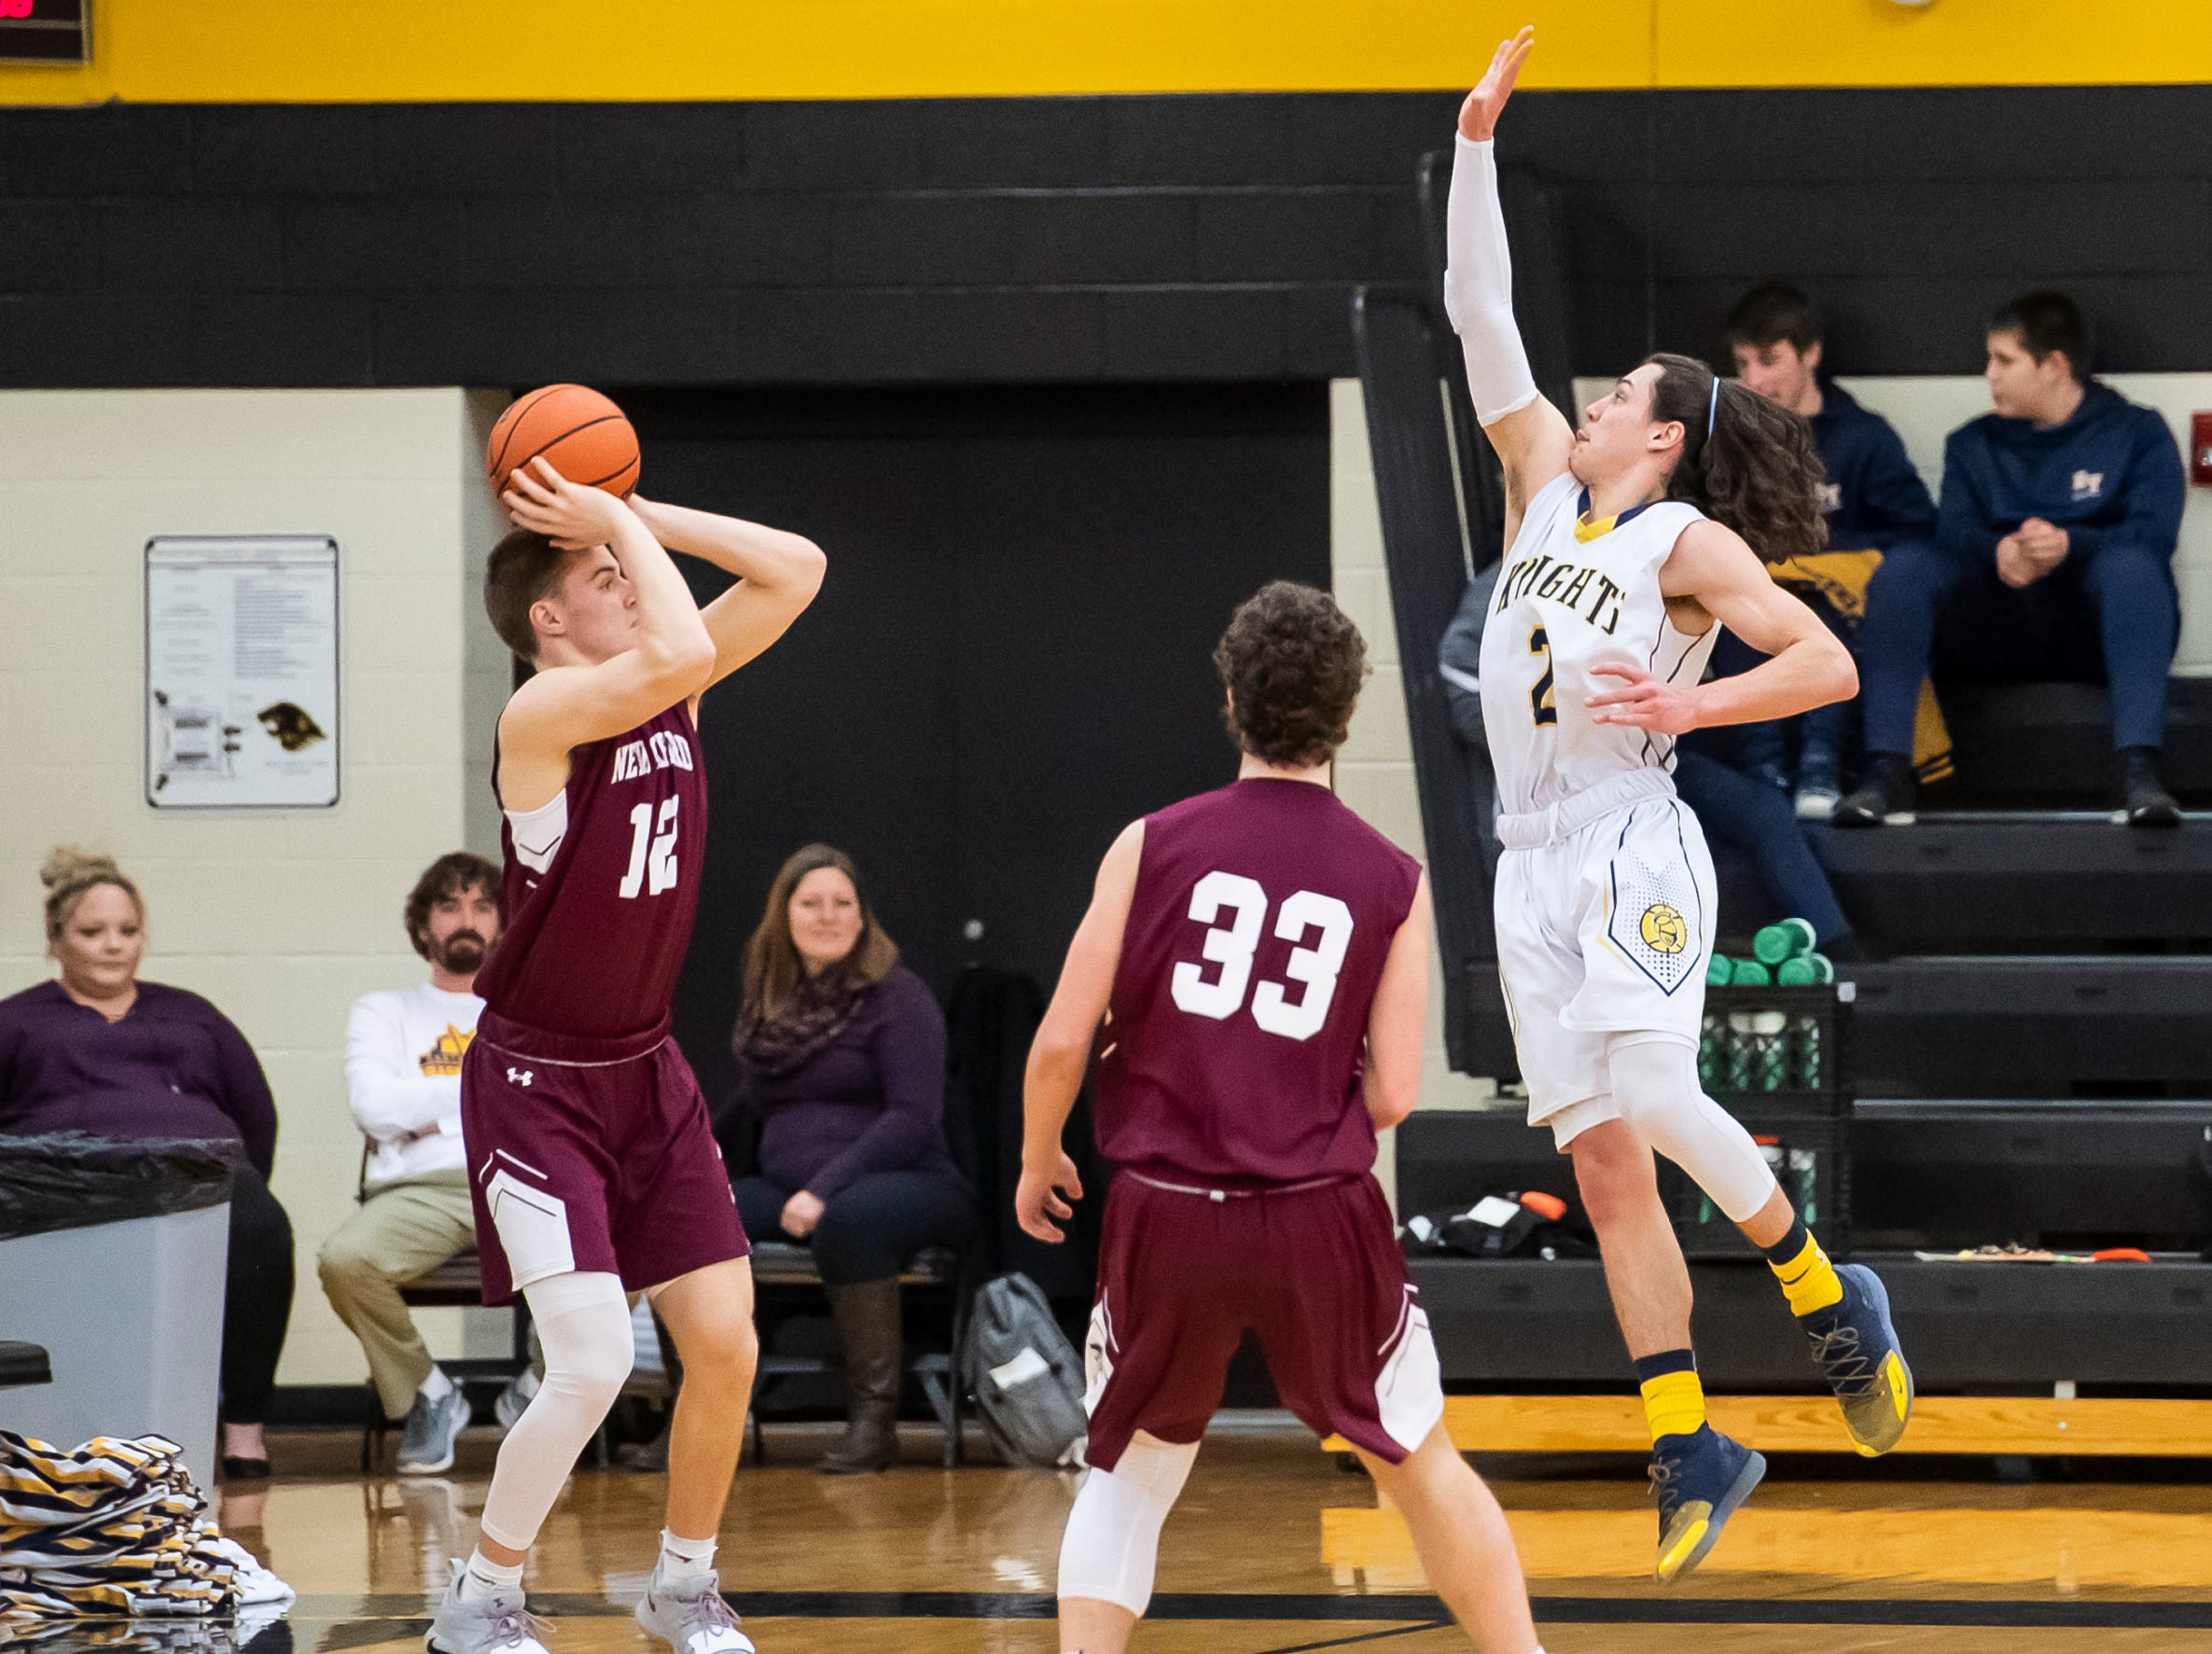 """New Oxford's Brayden Long shoots a corner three during play against Eastern York in a YAIAA quarterfinal game at Red Lion High School Saturday, February 9, 2019. The Colonials won 54-44. Long scored 15 points in the win. """"(Long) had been in a little bit of a slump,"""" New Oxford head coach Sean Bair said. """"I was very happy to see him get that going, but we know he's got that in him."""""""